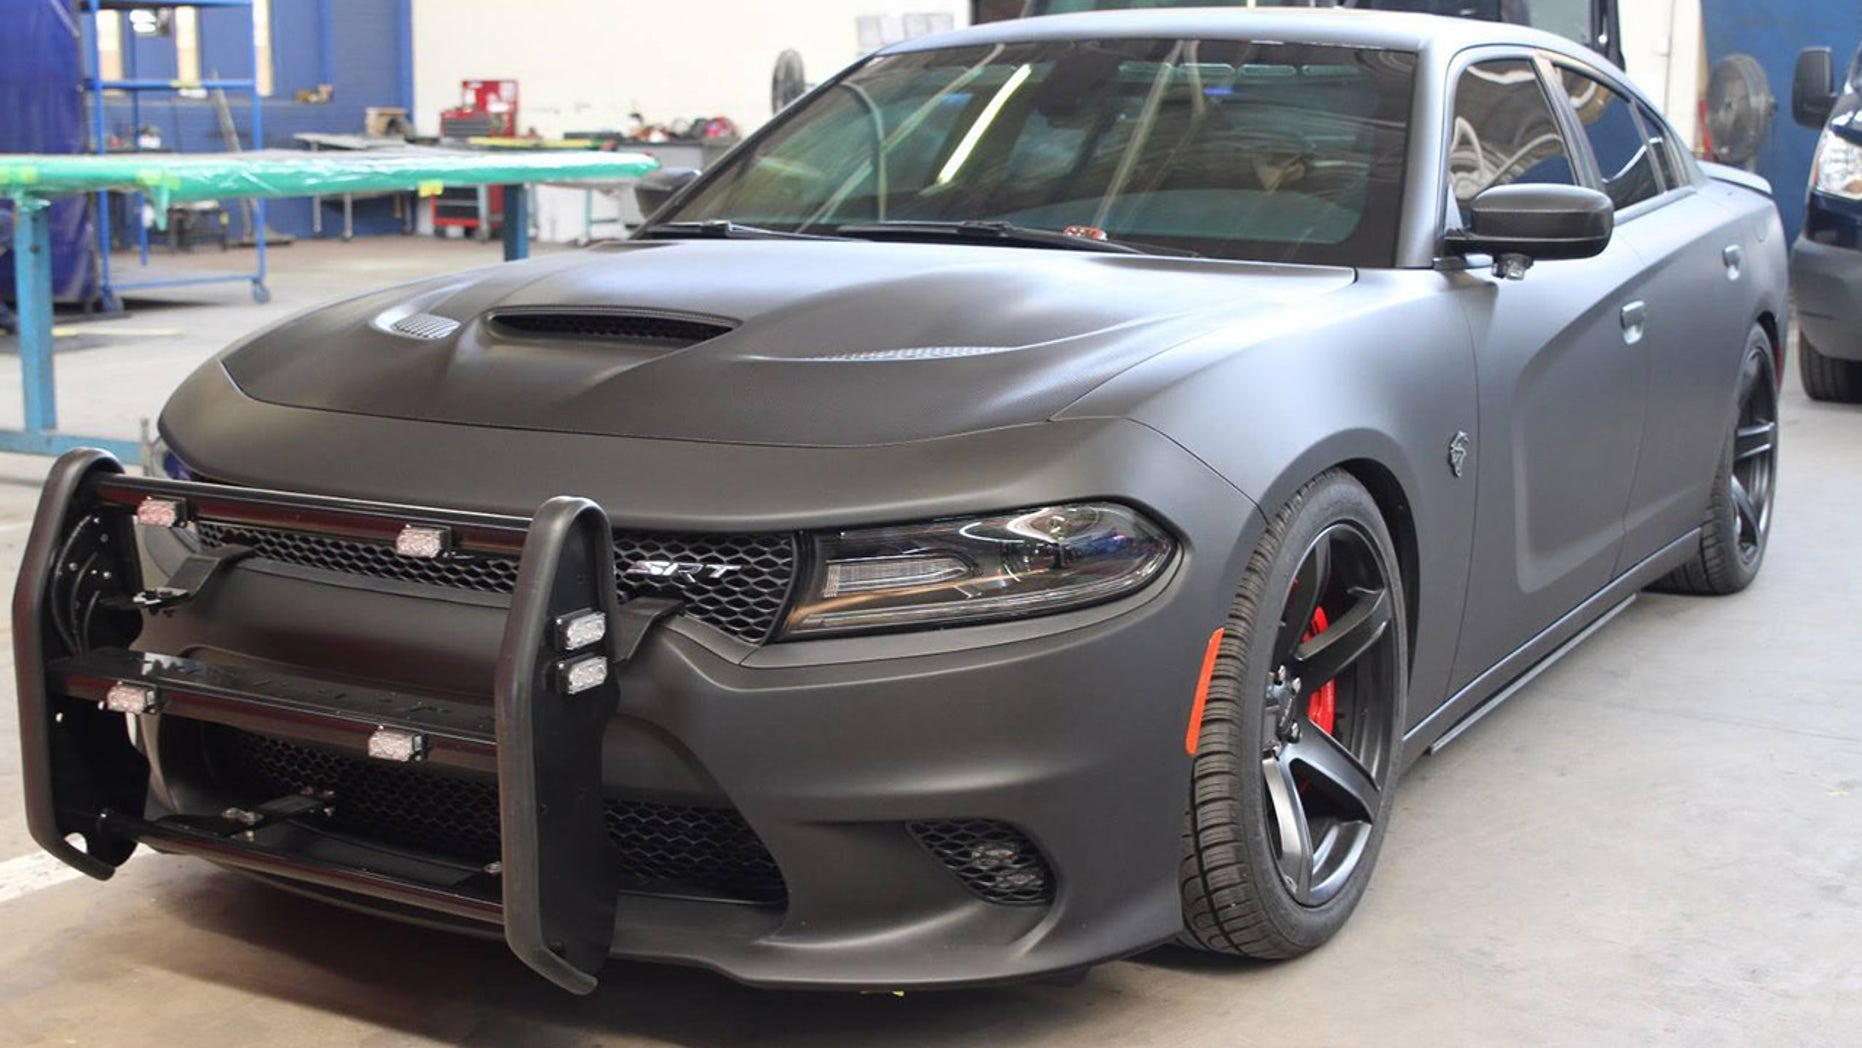 Police Can Now Buy An Armored Awd Dodge Charger Srt